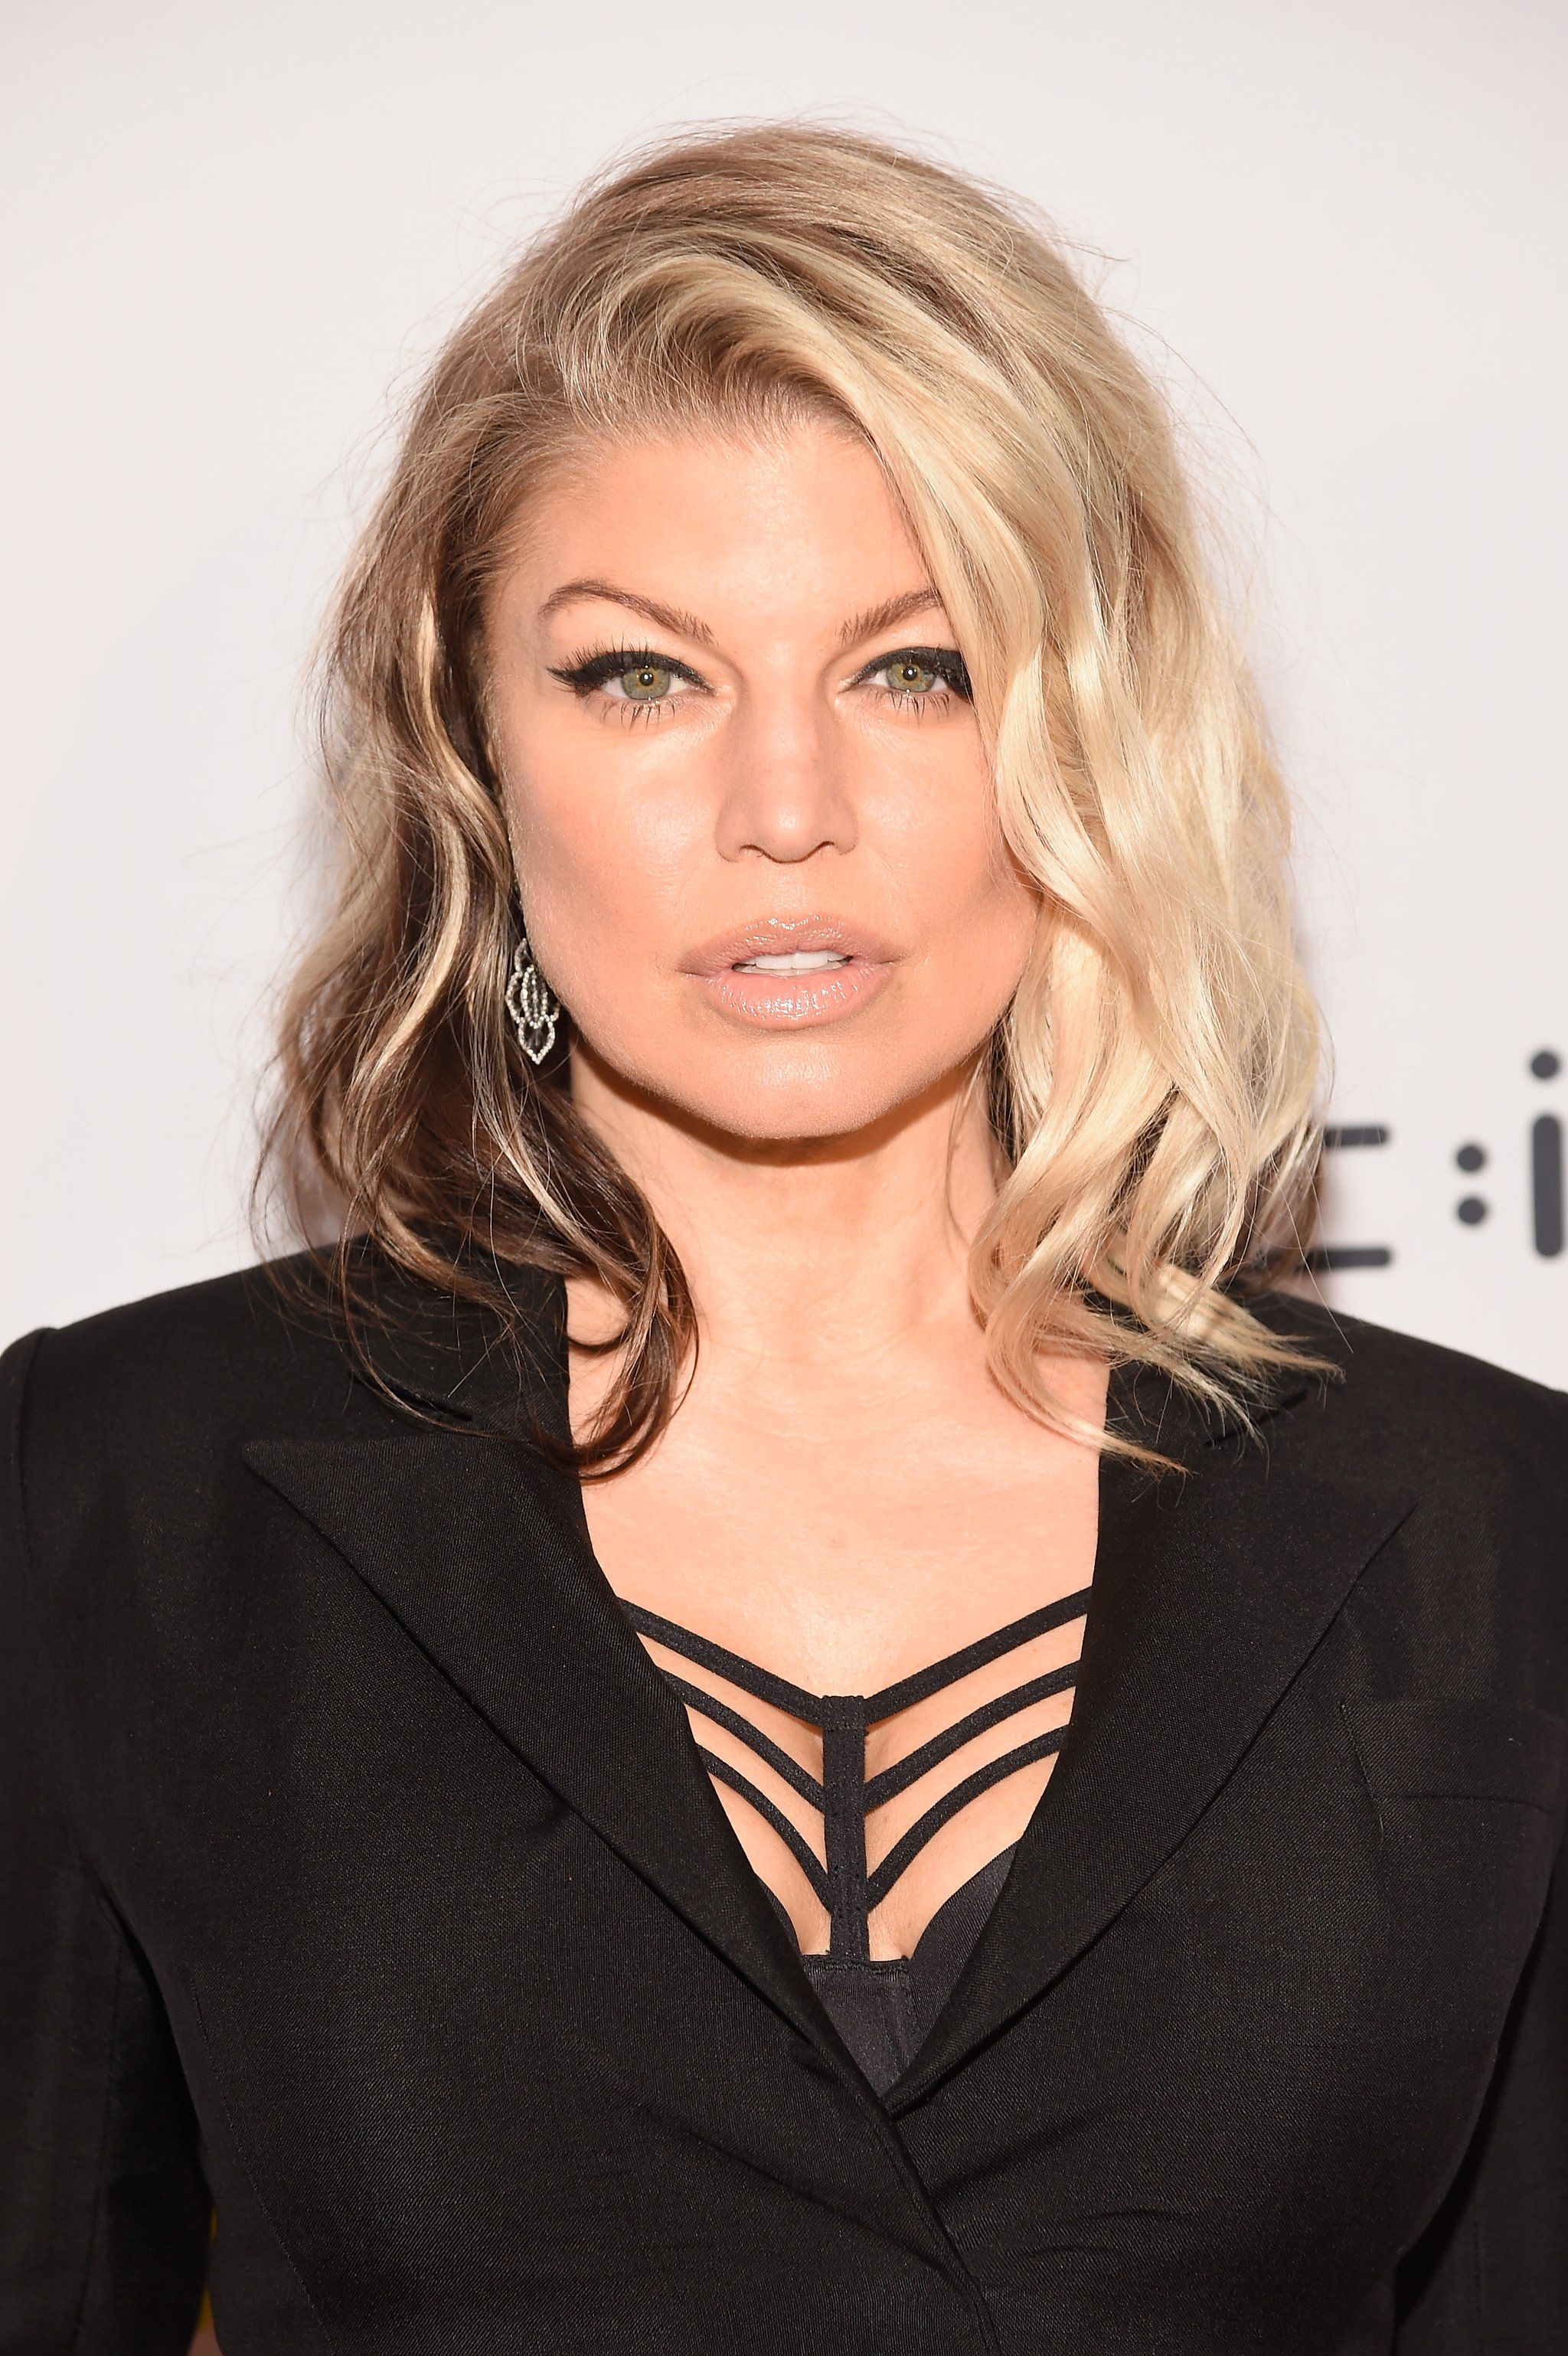 Discussion on this topic: Fergie Casual Long Layered Hairstyle, fergie-casual-long-layered-hairstyle/